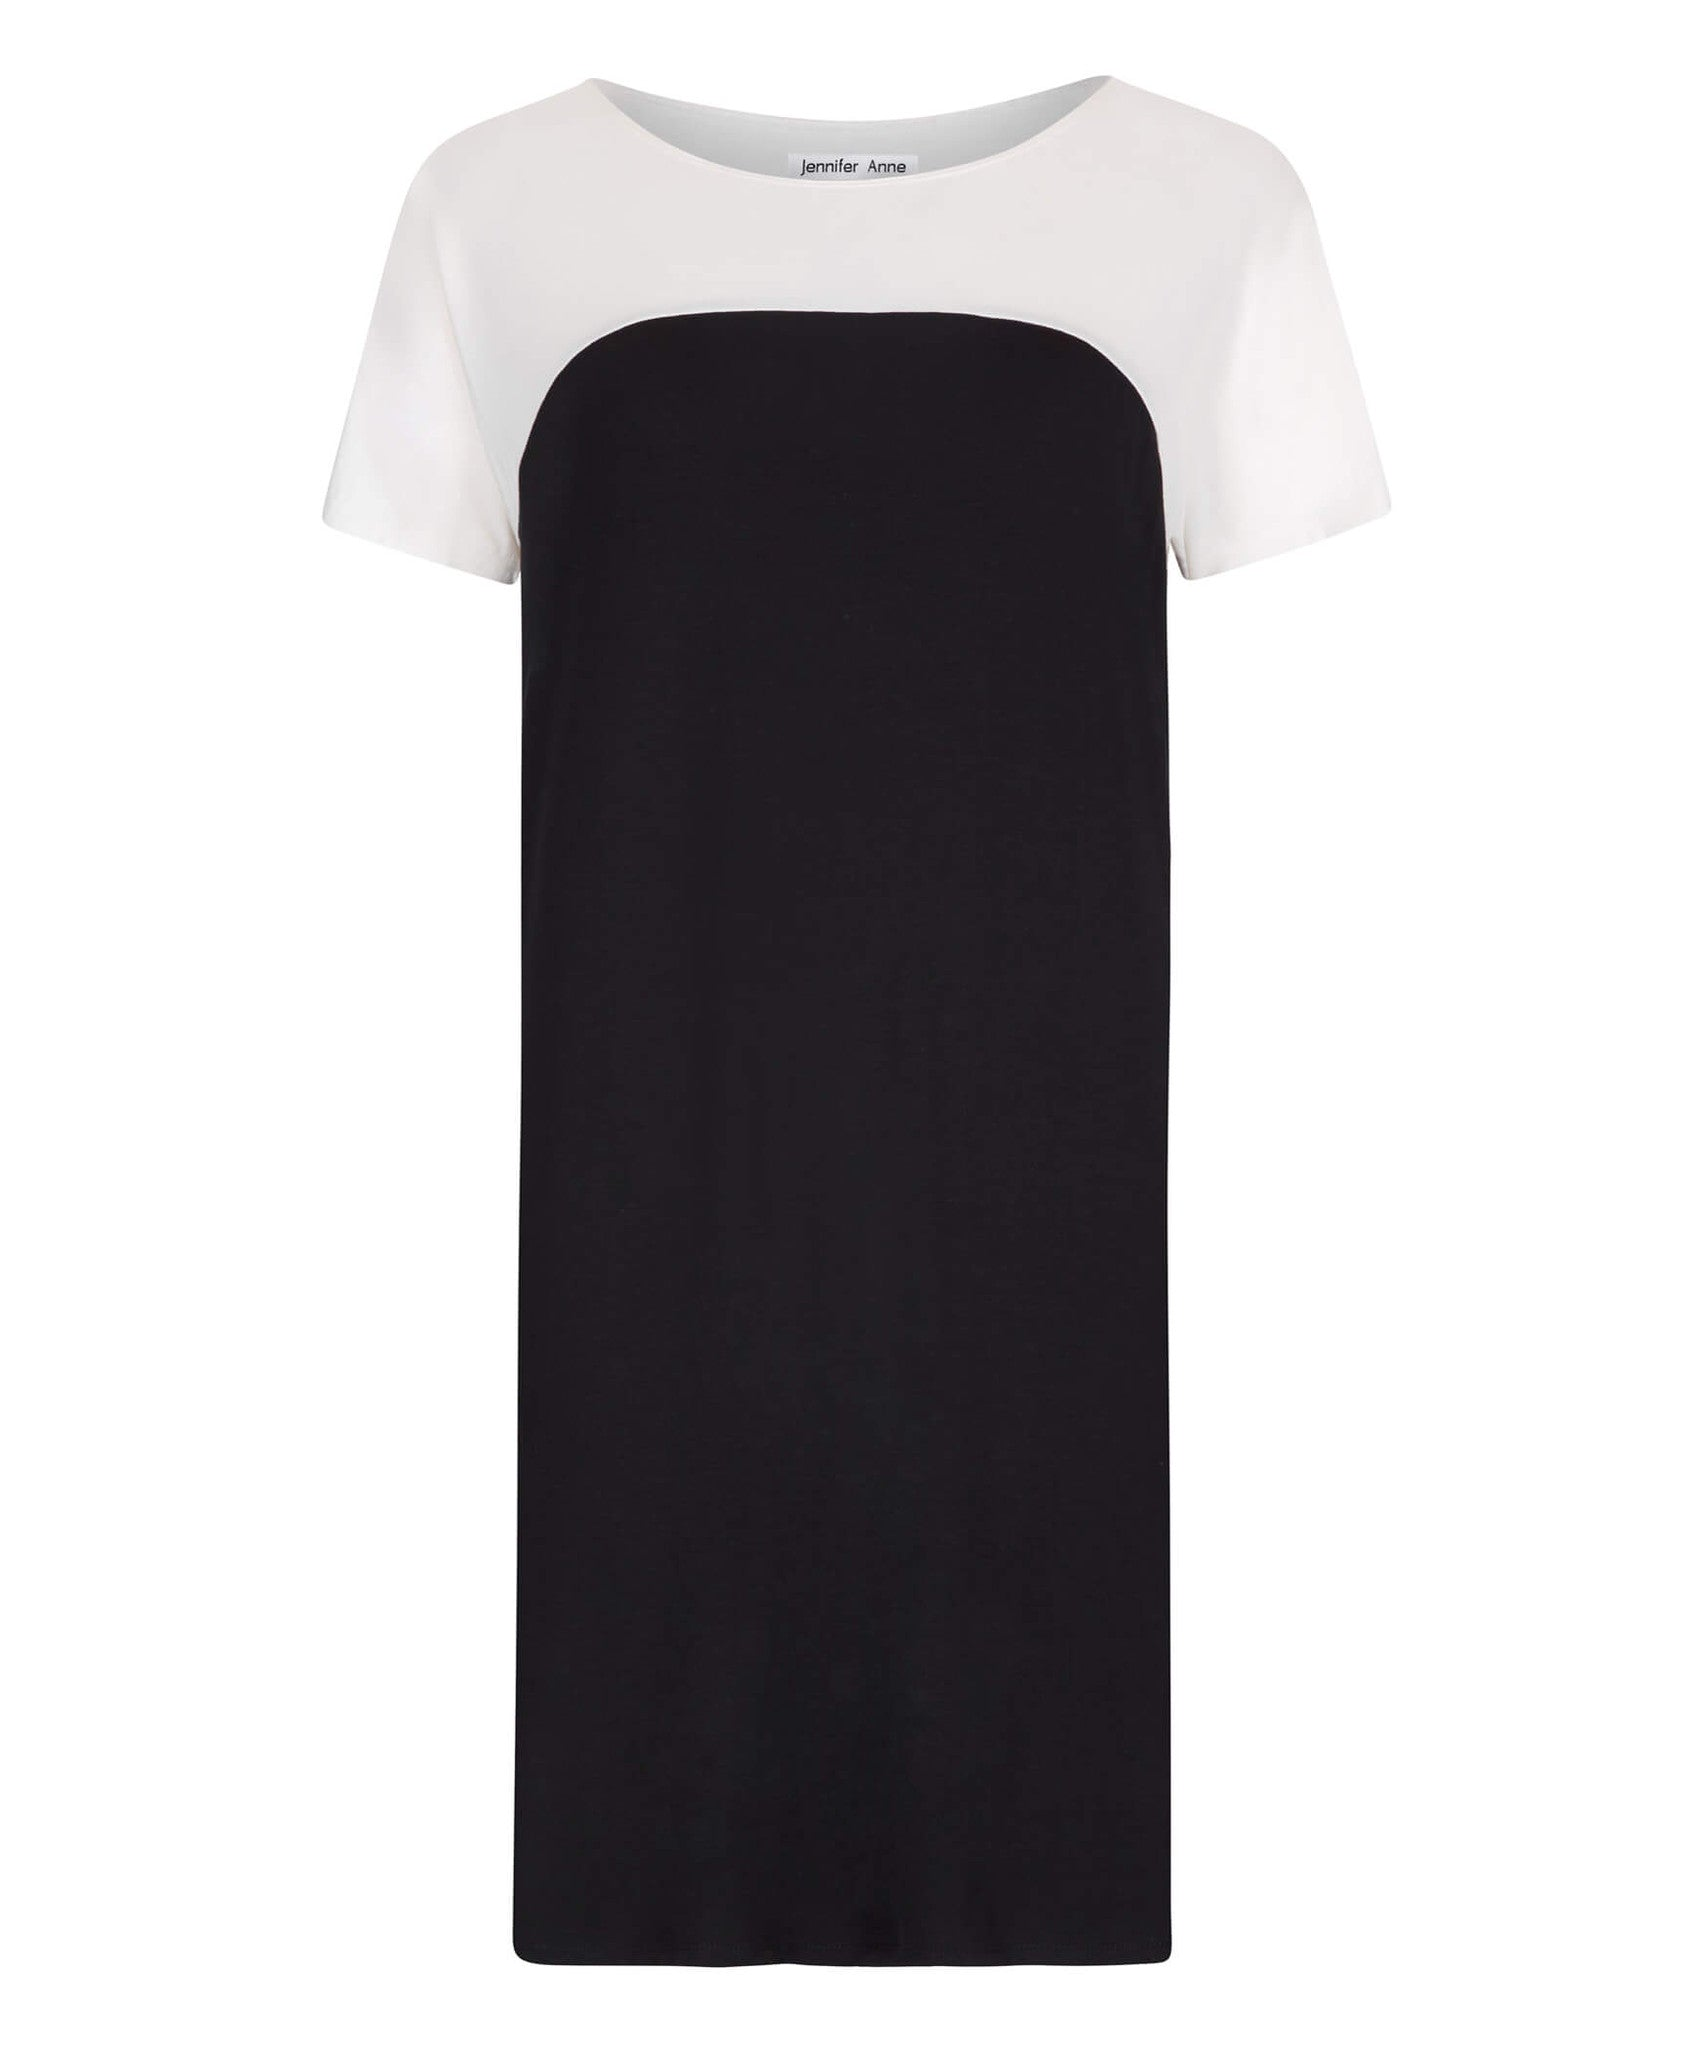 Petite Black T-Shirt Dress - Jennifer-Anne